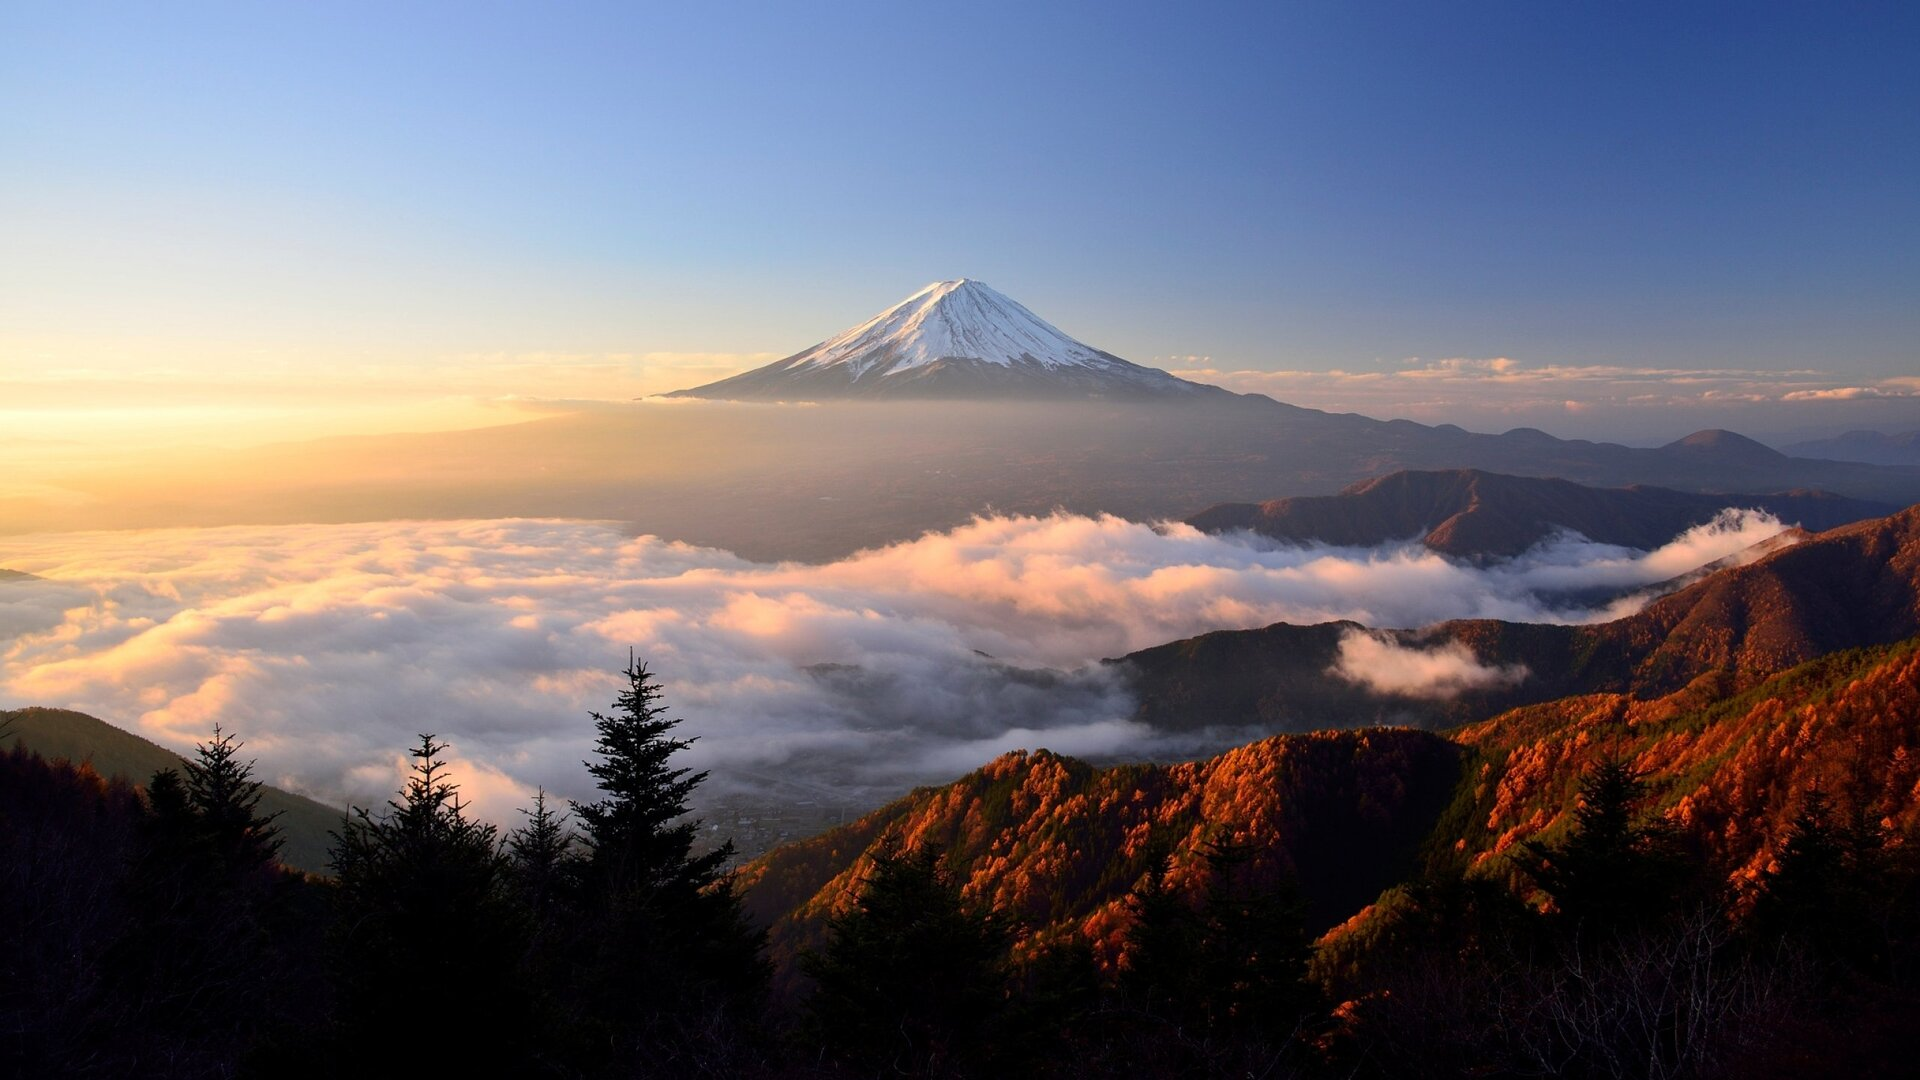 Mount Fuji Hd Qhd